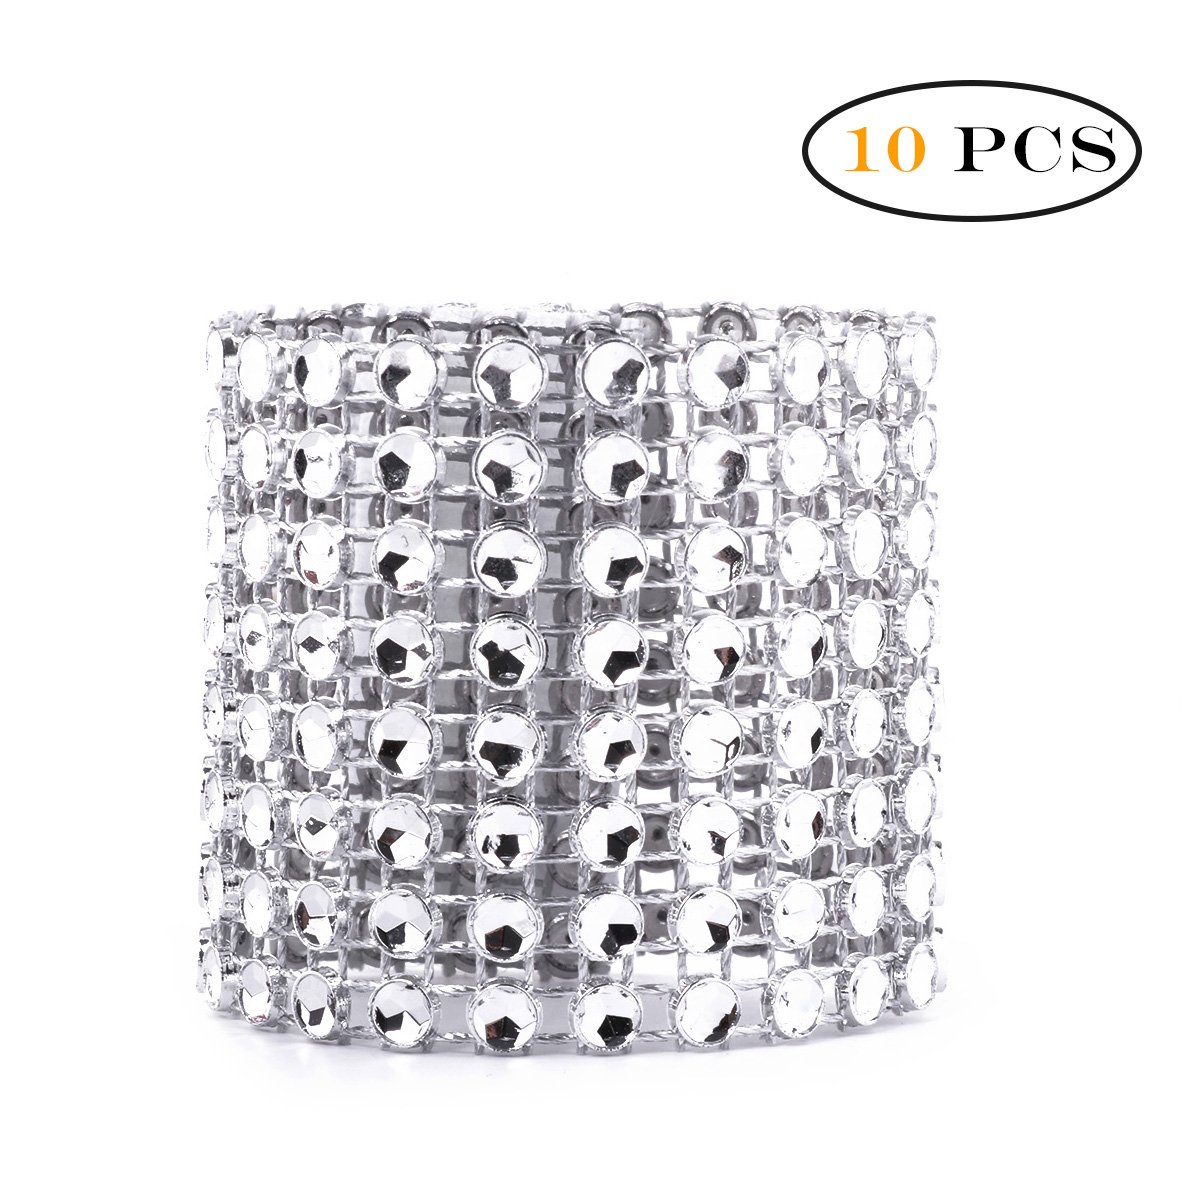 TiaoBug Bling Rhinestone Napkin Rings Dinner Banquet Flower Boutique Enclosure Adornment for Wedding Xmas Party Reception Gold 10 Pcs